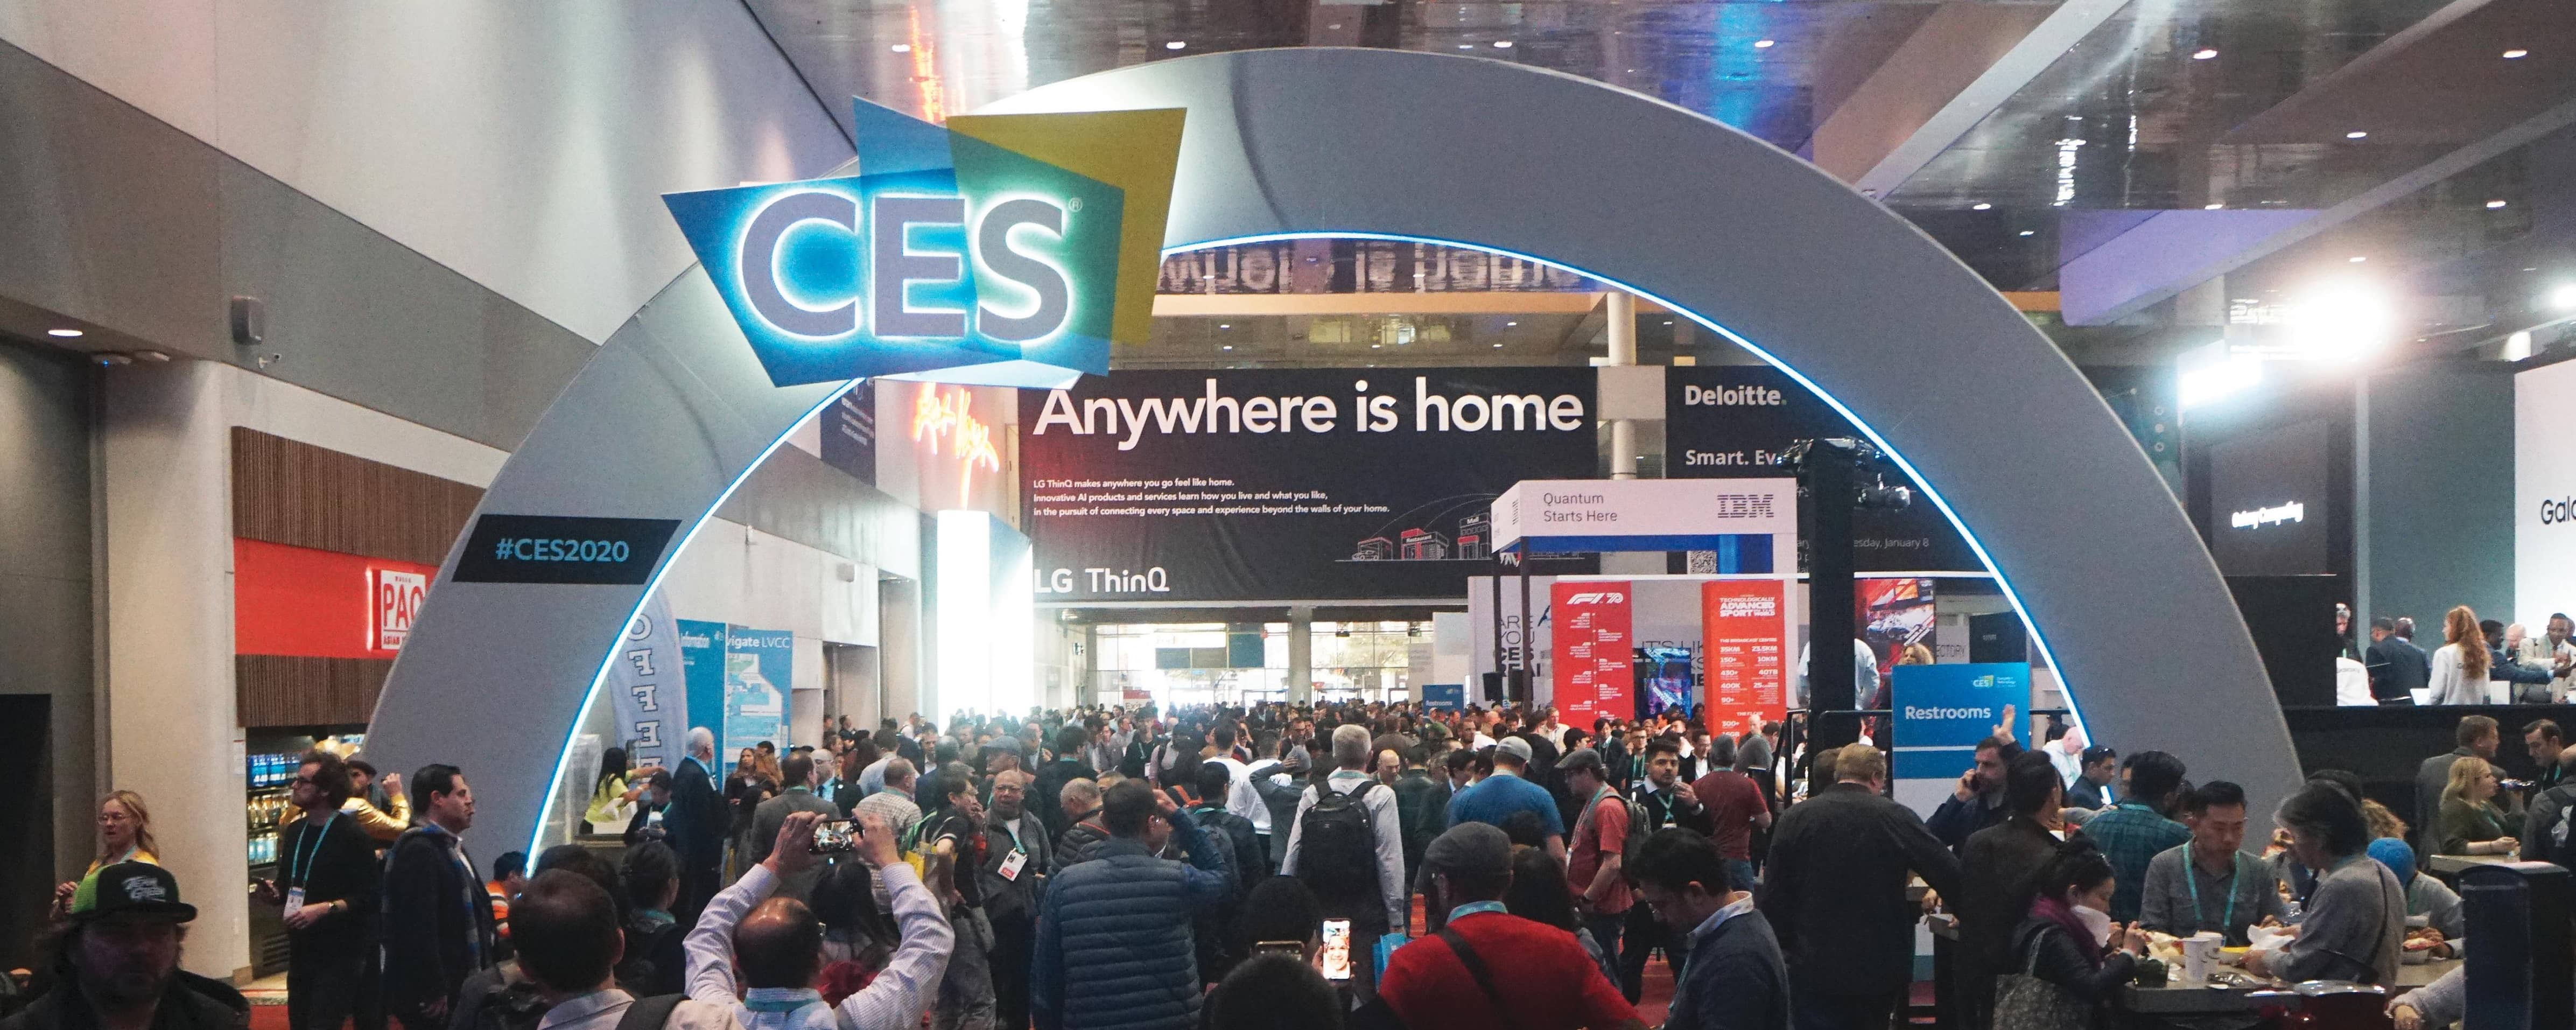 CES 2020: THE START OF A BIG